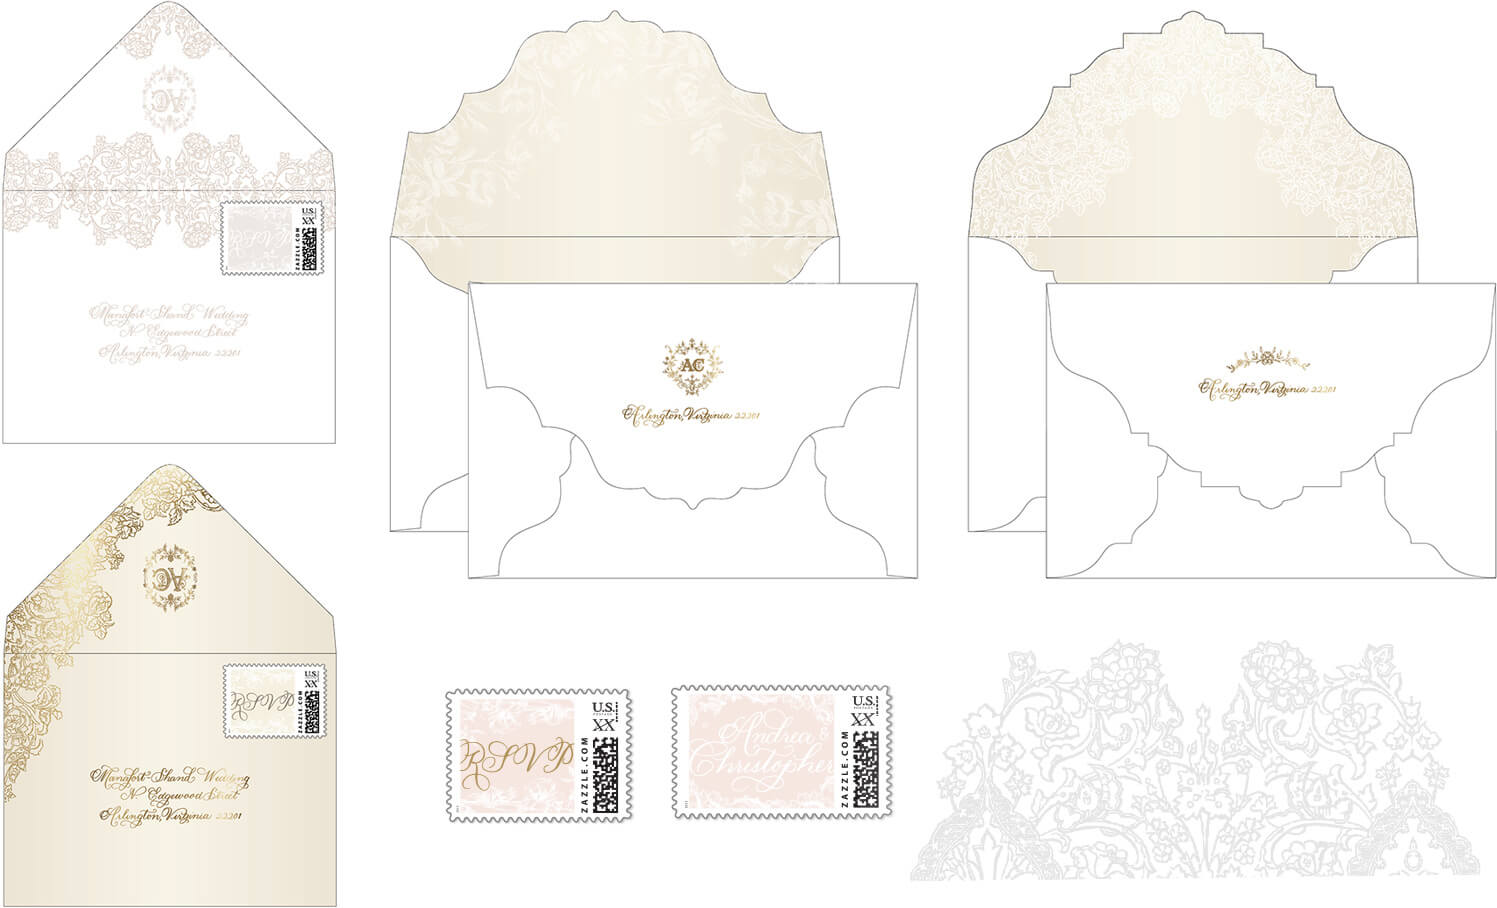 Custom designed envelope, stamps and reply envelope